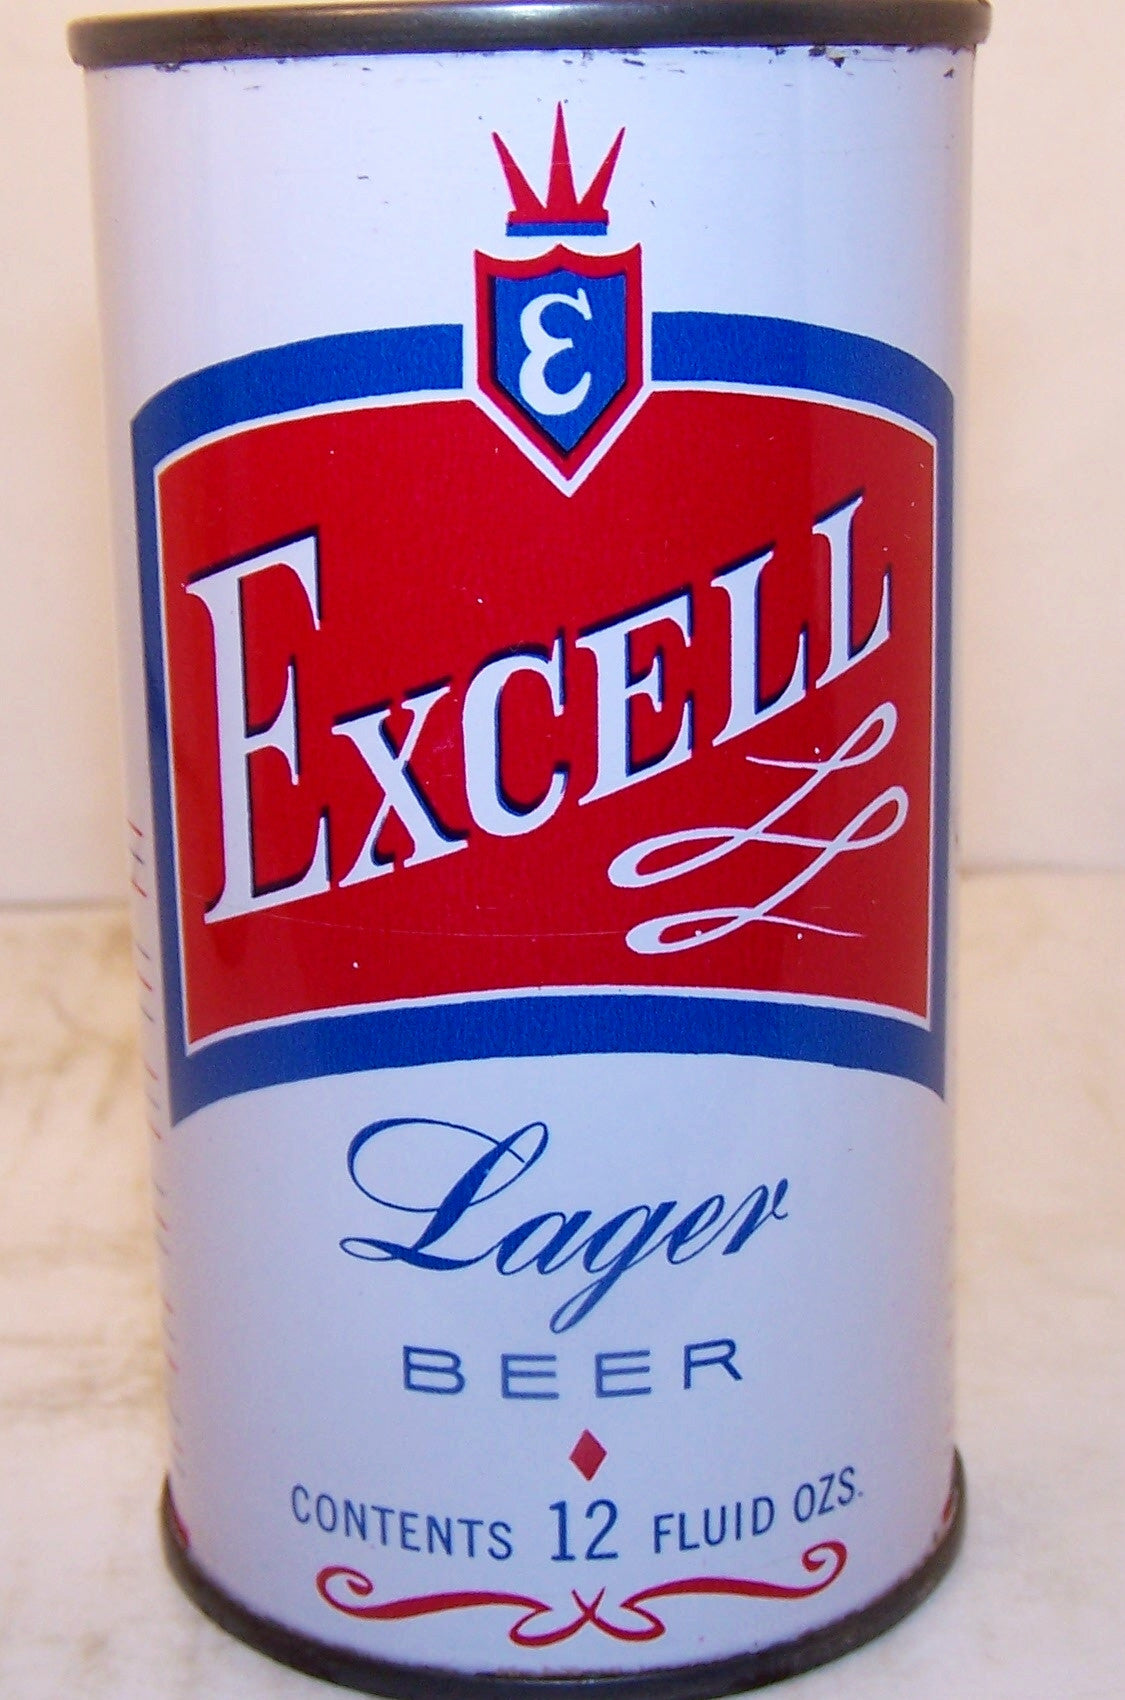 Excell Lager Beer, USBC 61-14, grade 1  Sold  12/18/14